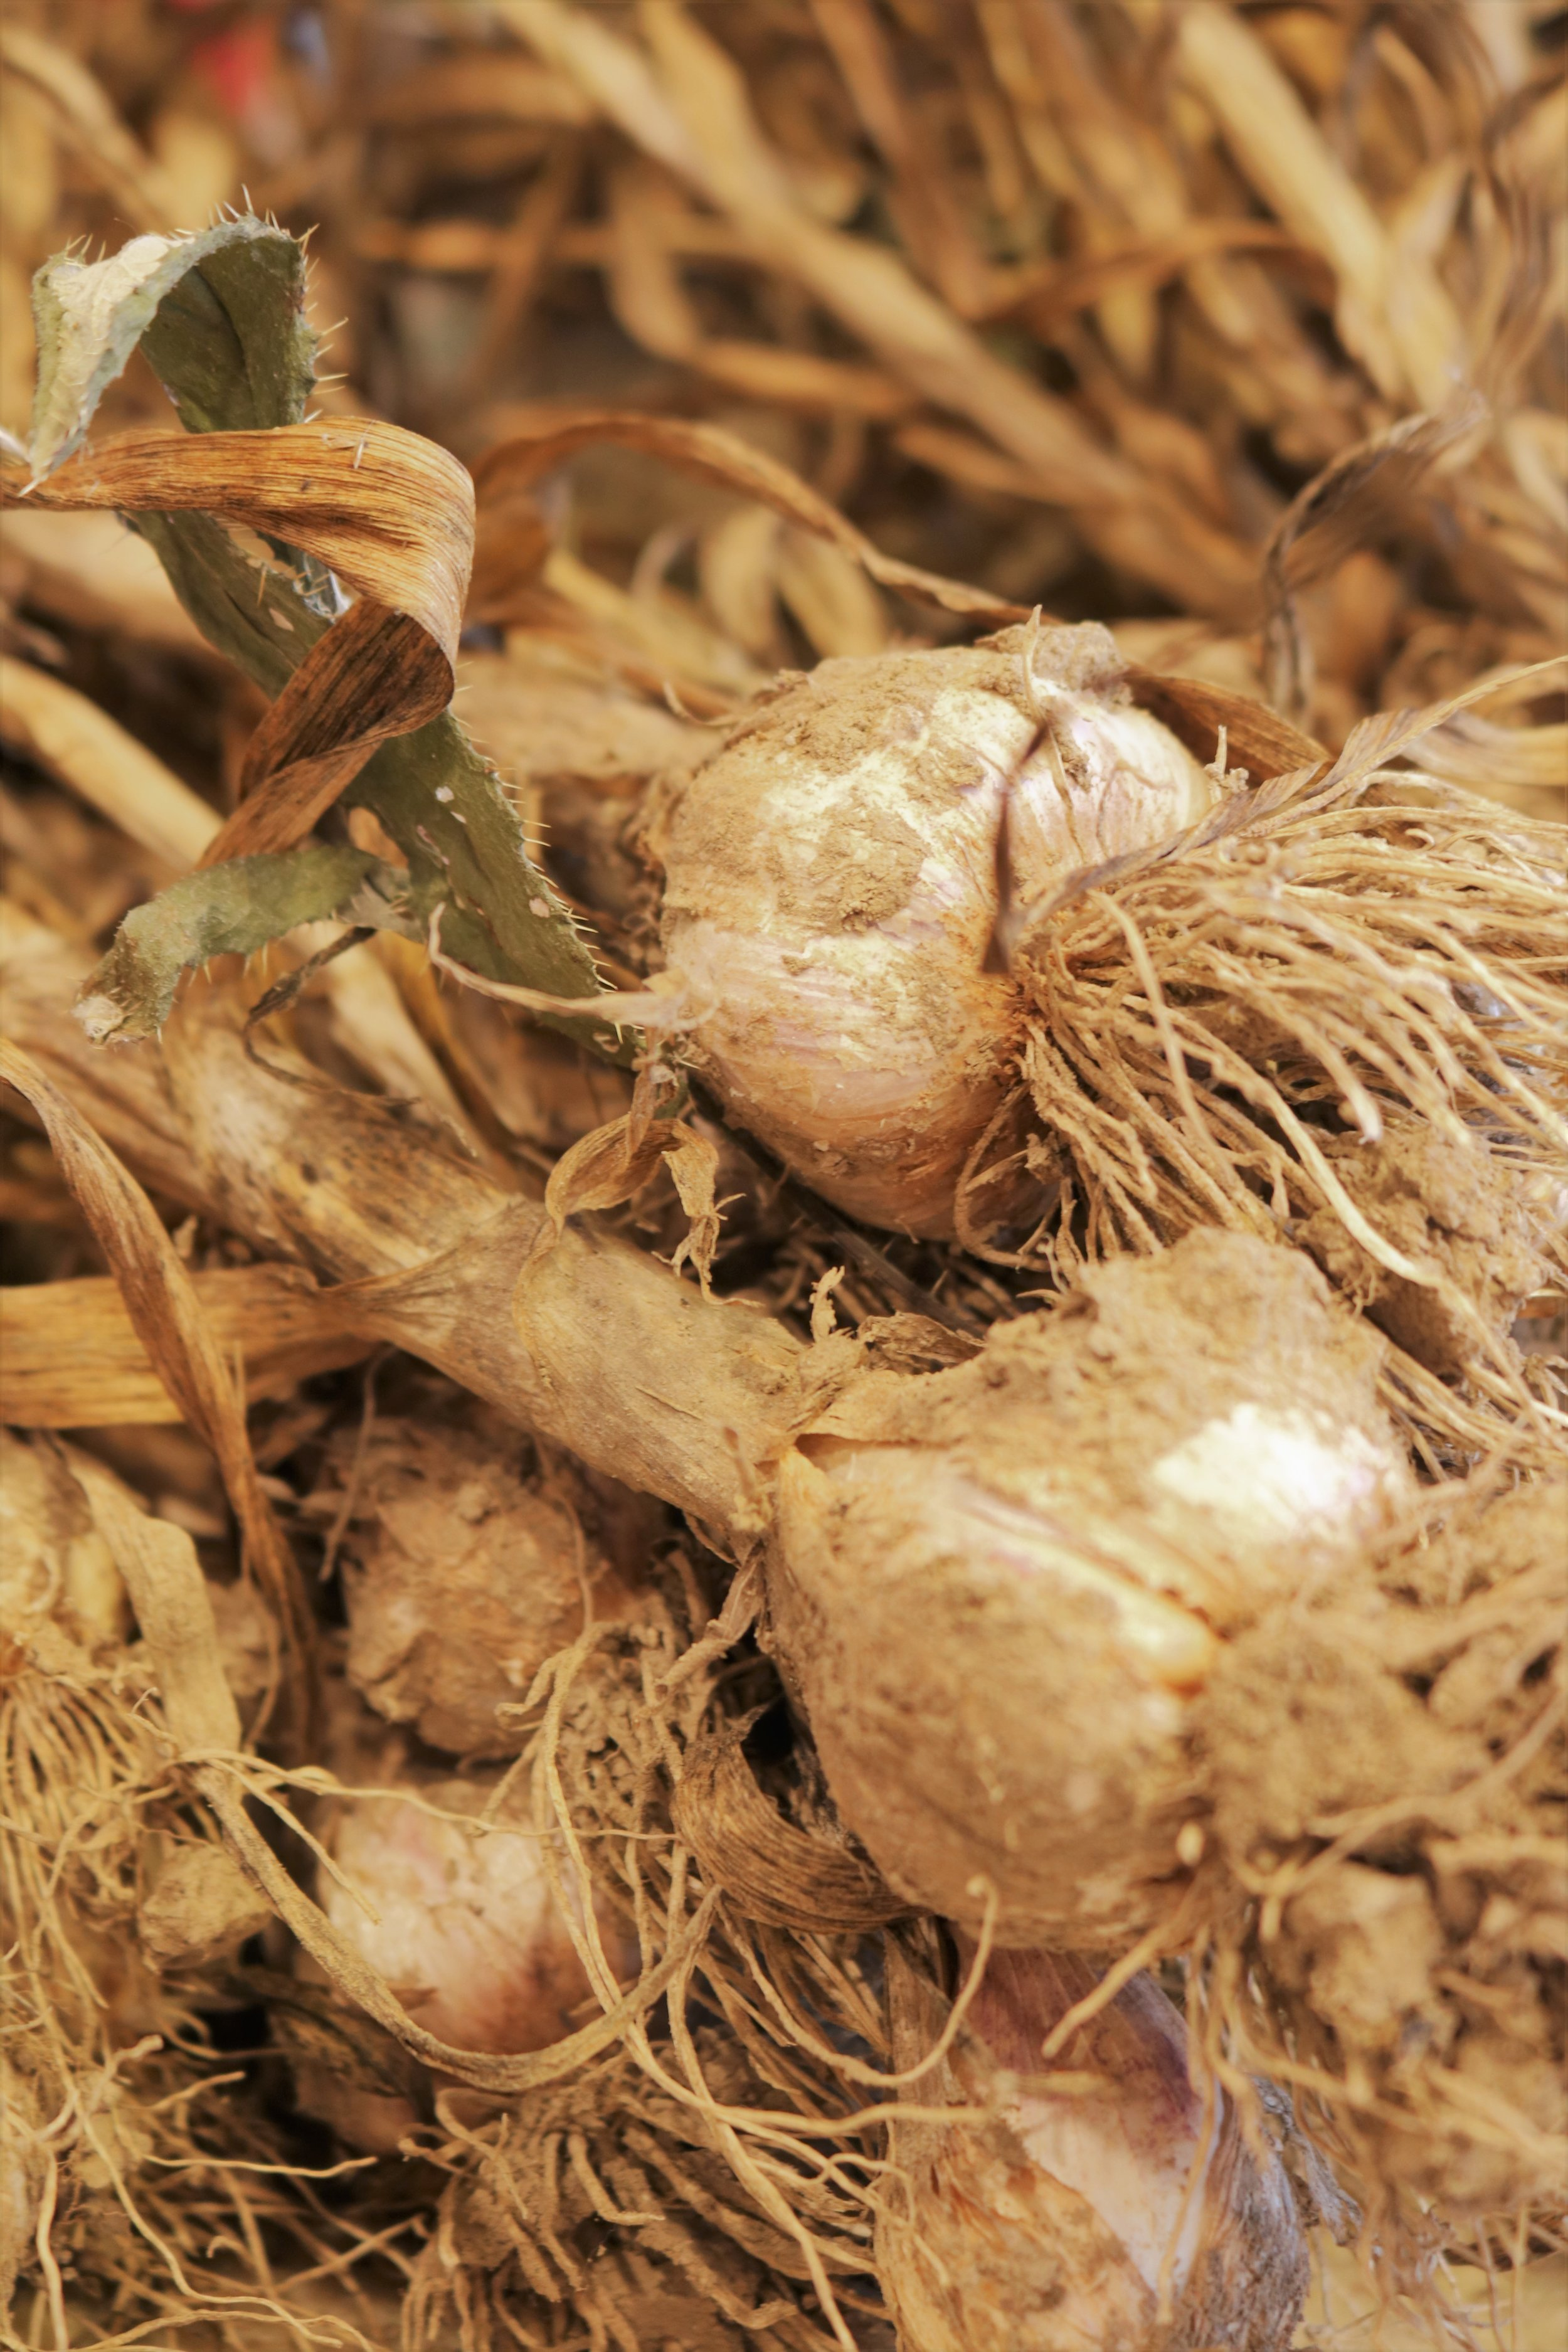 Fresh cured garlic bulbs, roots and stems still attached.